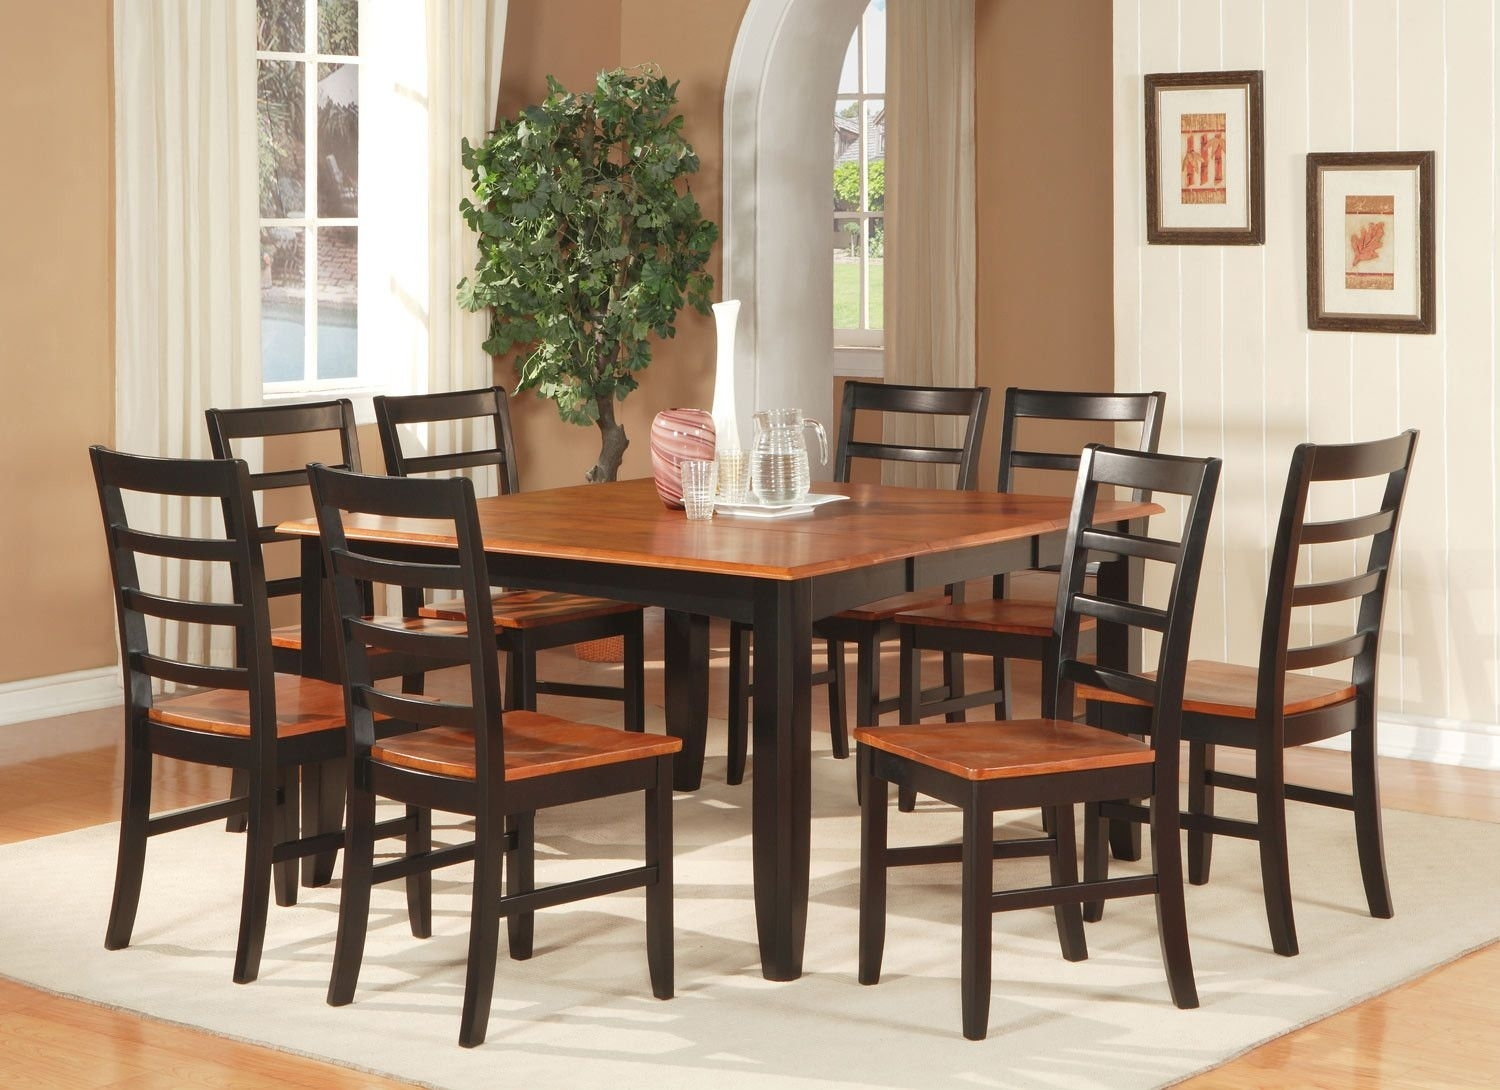 Parfait 7 Piece Dining Set In 2018 | New House | Pinterest Within Current Market 7 Piece Dining Sets With Side Chairs (Photo 5 of 20)